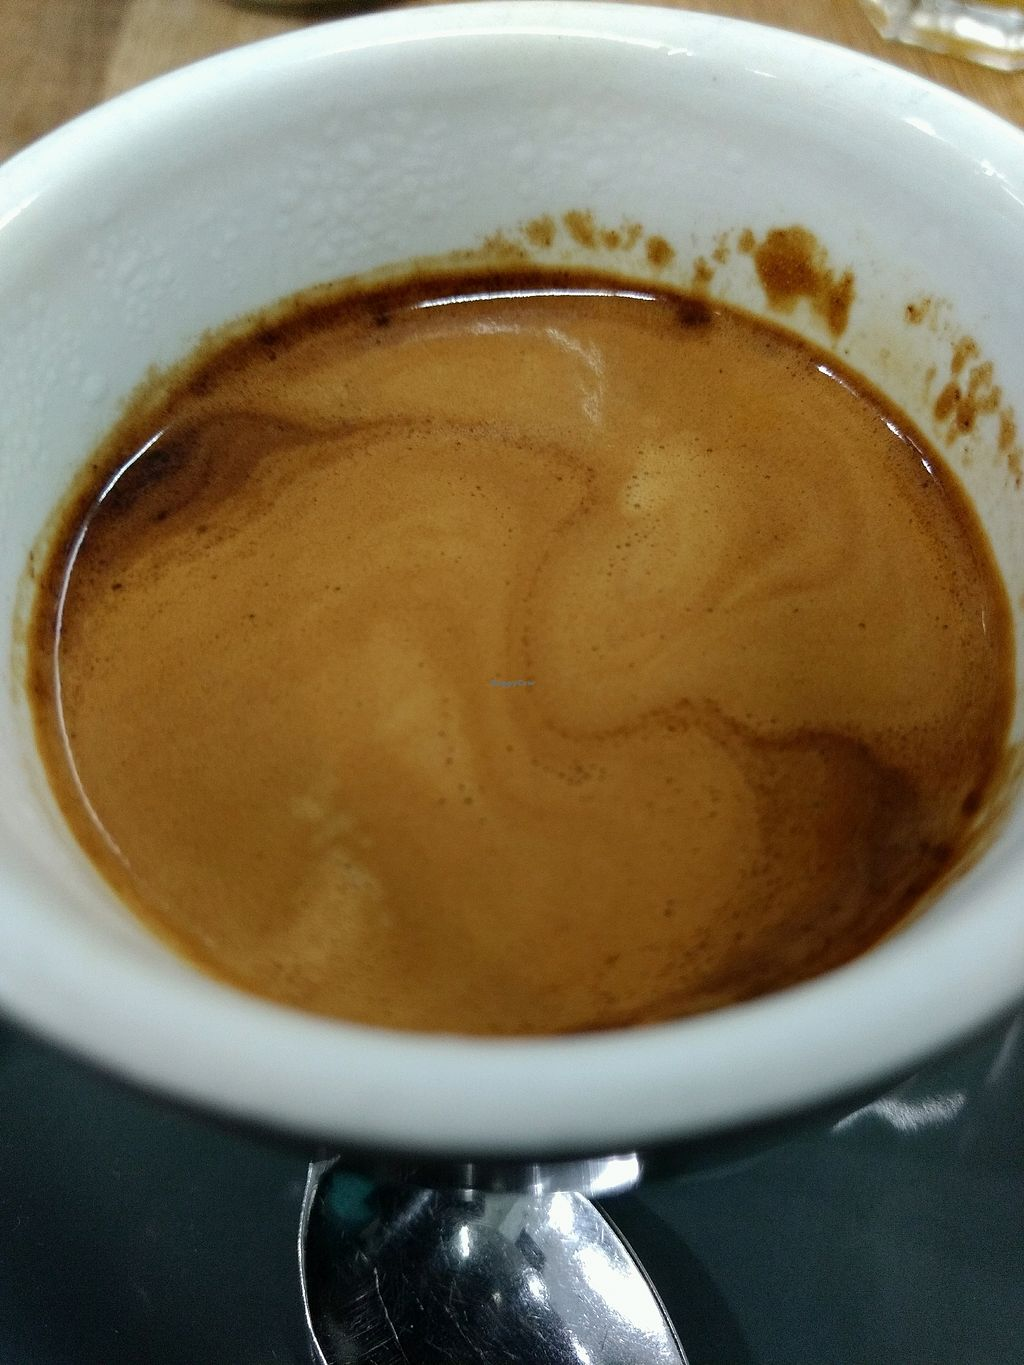 """Photo of Castello Coffee - Castle St  by <a href=""""/members/profile/craigmc"""">craigmc</a> <br/>world of twist <br/> January 8, 2018  - <a href='/contact/abuse/image/80362/344369'>Report</a>"""